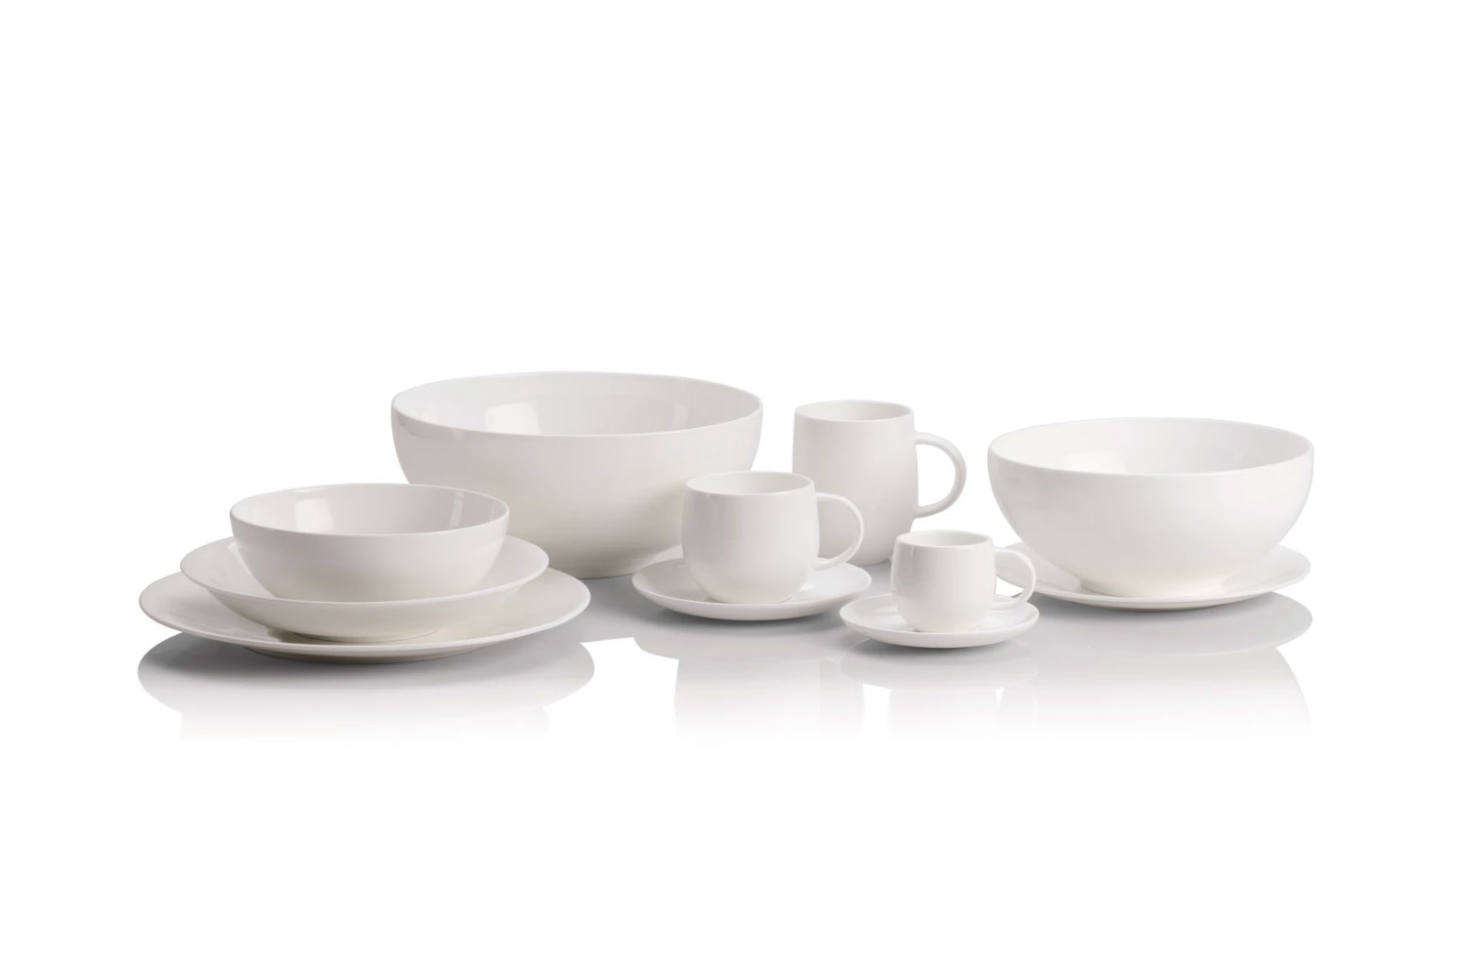 """Abvoe: Italian architect Guido Venturini designed the All-Time Dinnerware for Alessi with """"fluid forms and clean lines"""" in bone china. Each piece is designed to softly reflect light. The 13-Piece All-Time Table Set is $240 at Alessi; serving pieces and additional cups are also available."""